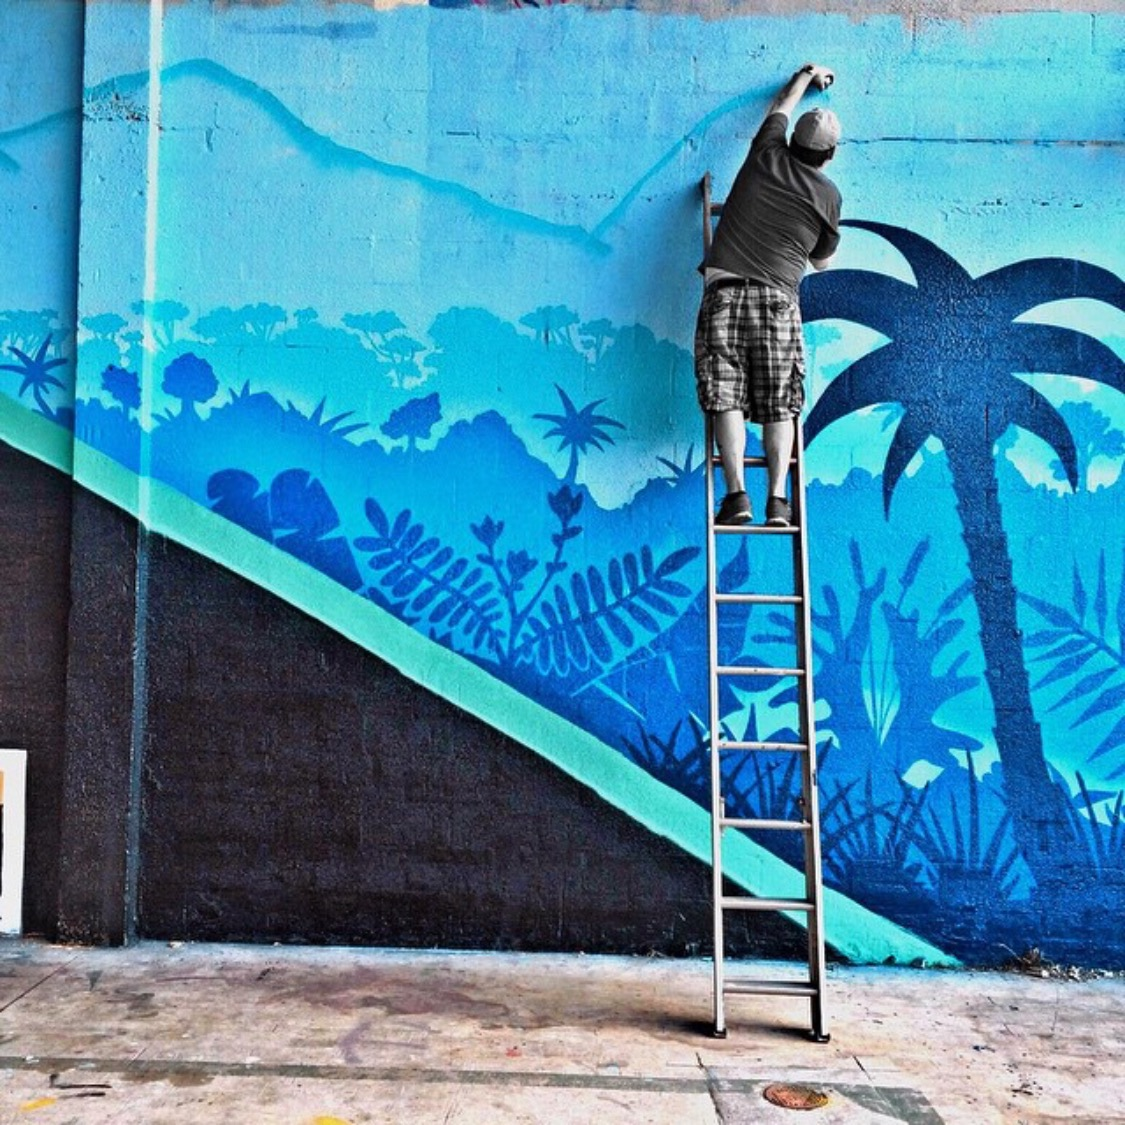 Art Basel mural for Mana projects Wynwood, Fl